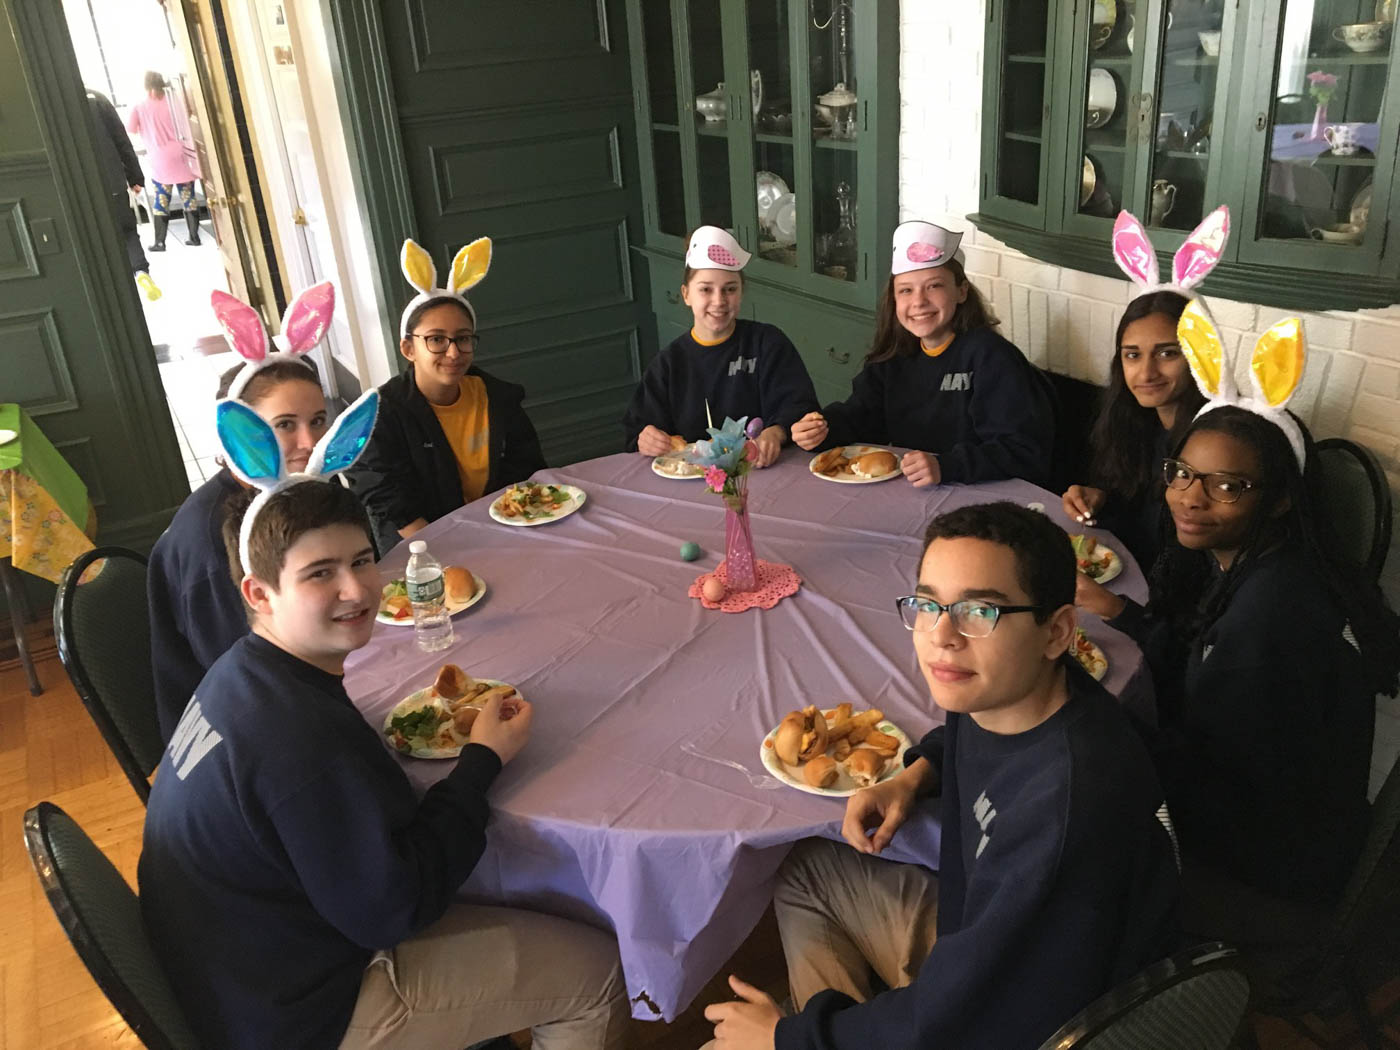 fundraising-volunteers-sitting-around-table-eating-with-bunny-ears-on